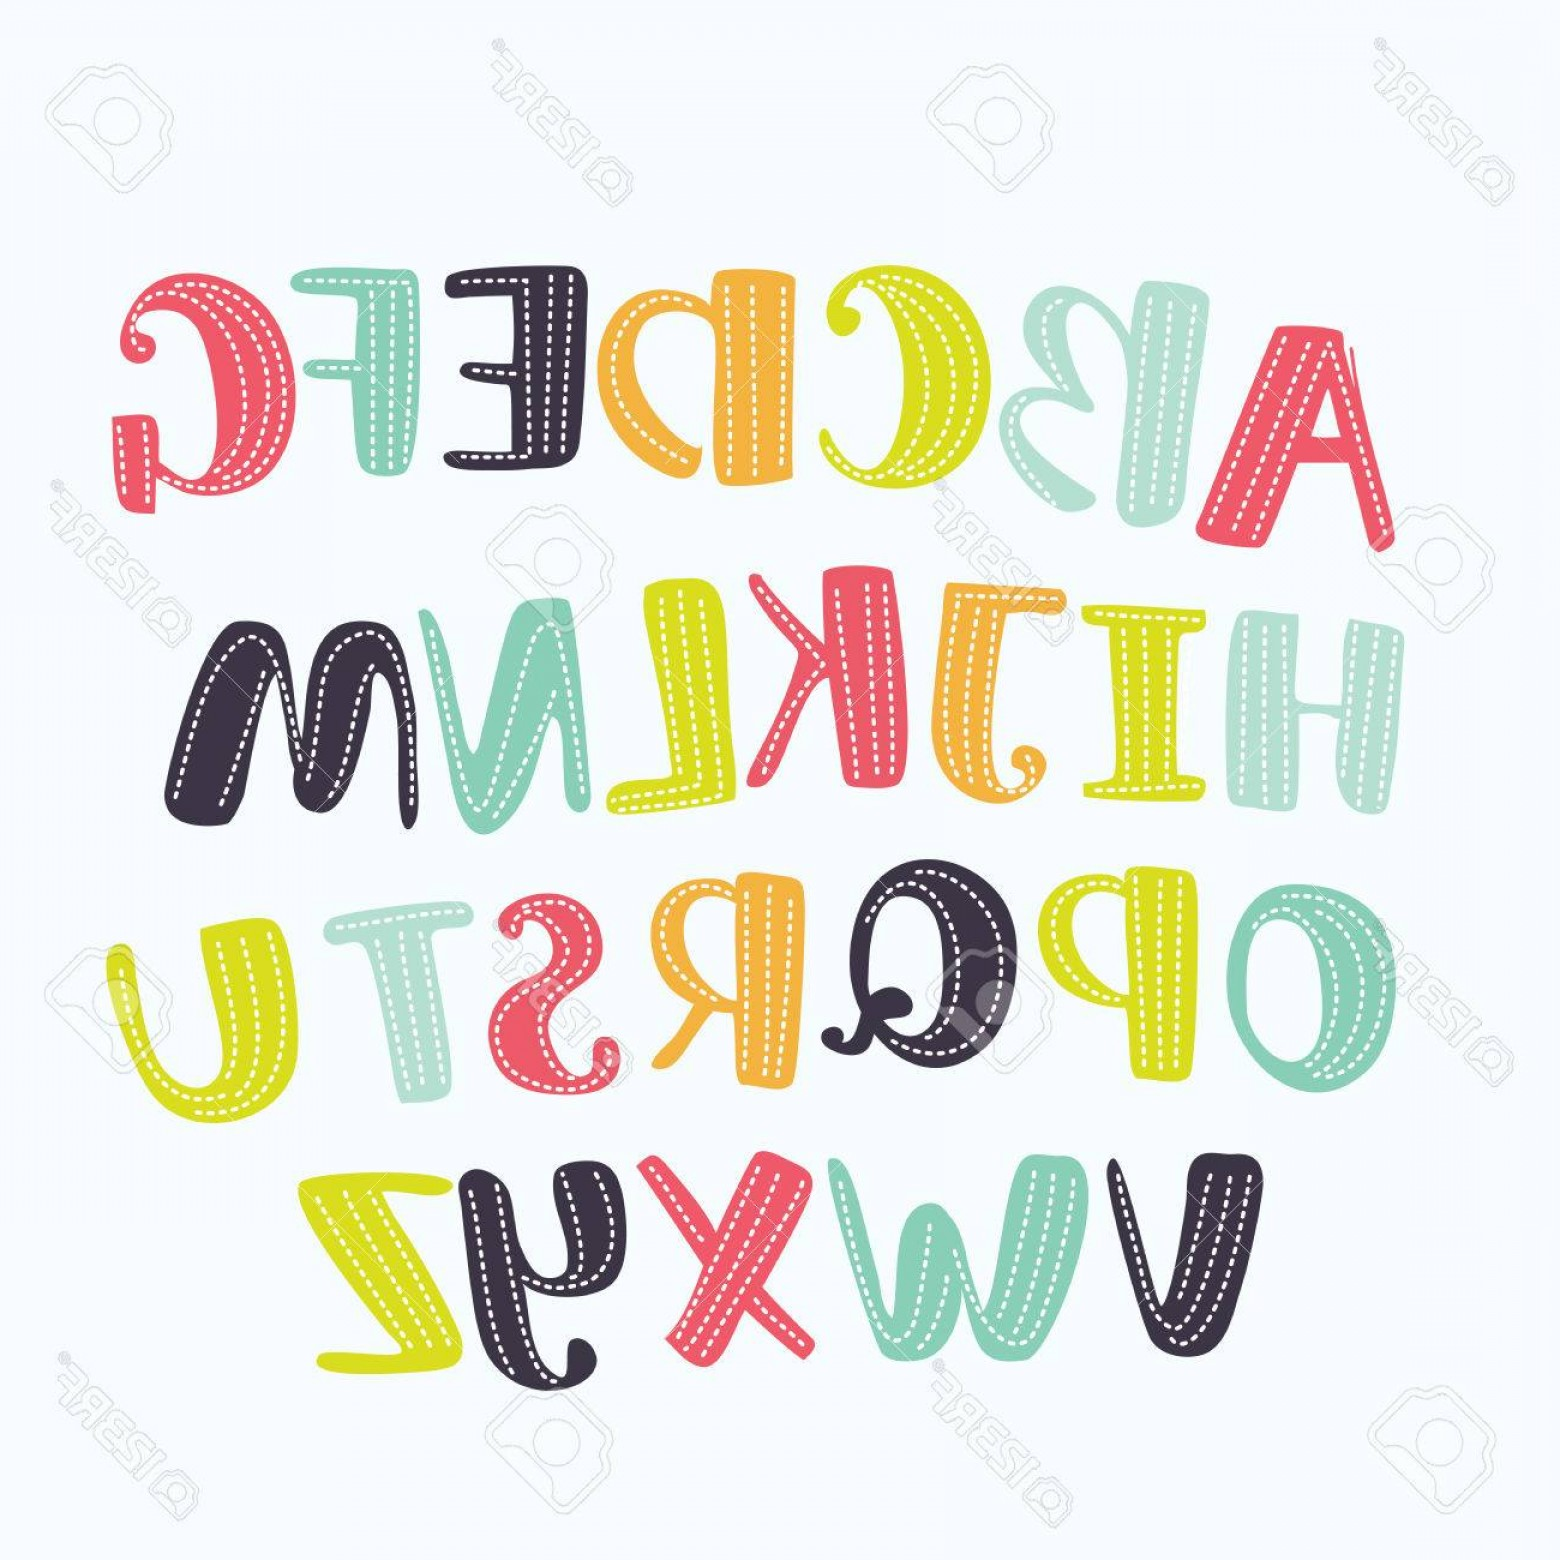 ABC Vectors: Photostock Vector Vector Cartoon Alphabet White Background Upper Letters With Dotted Line Cute Abc Design For Book Cov